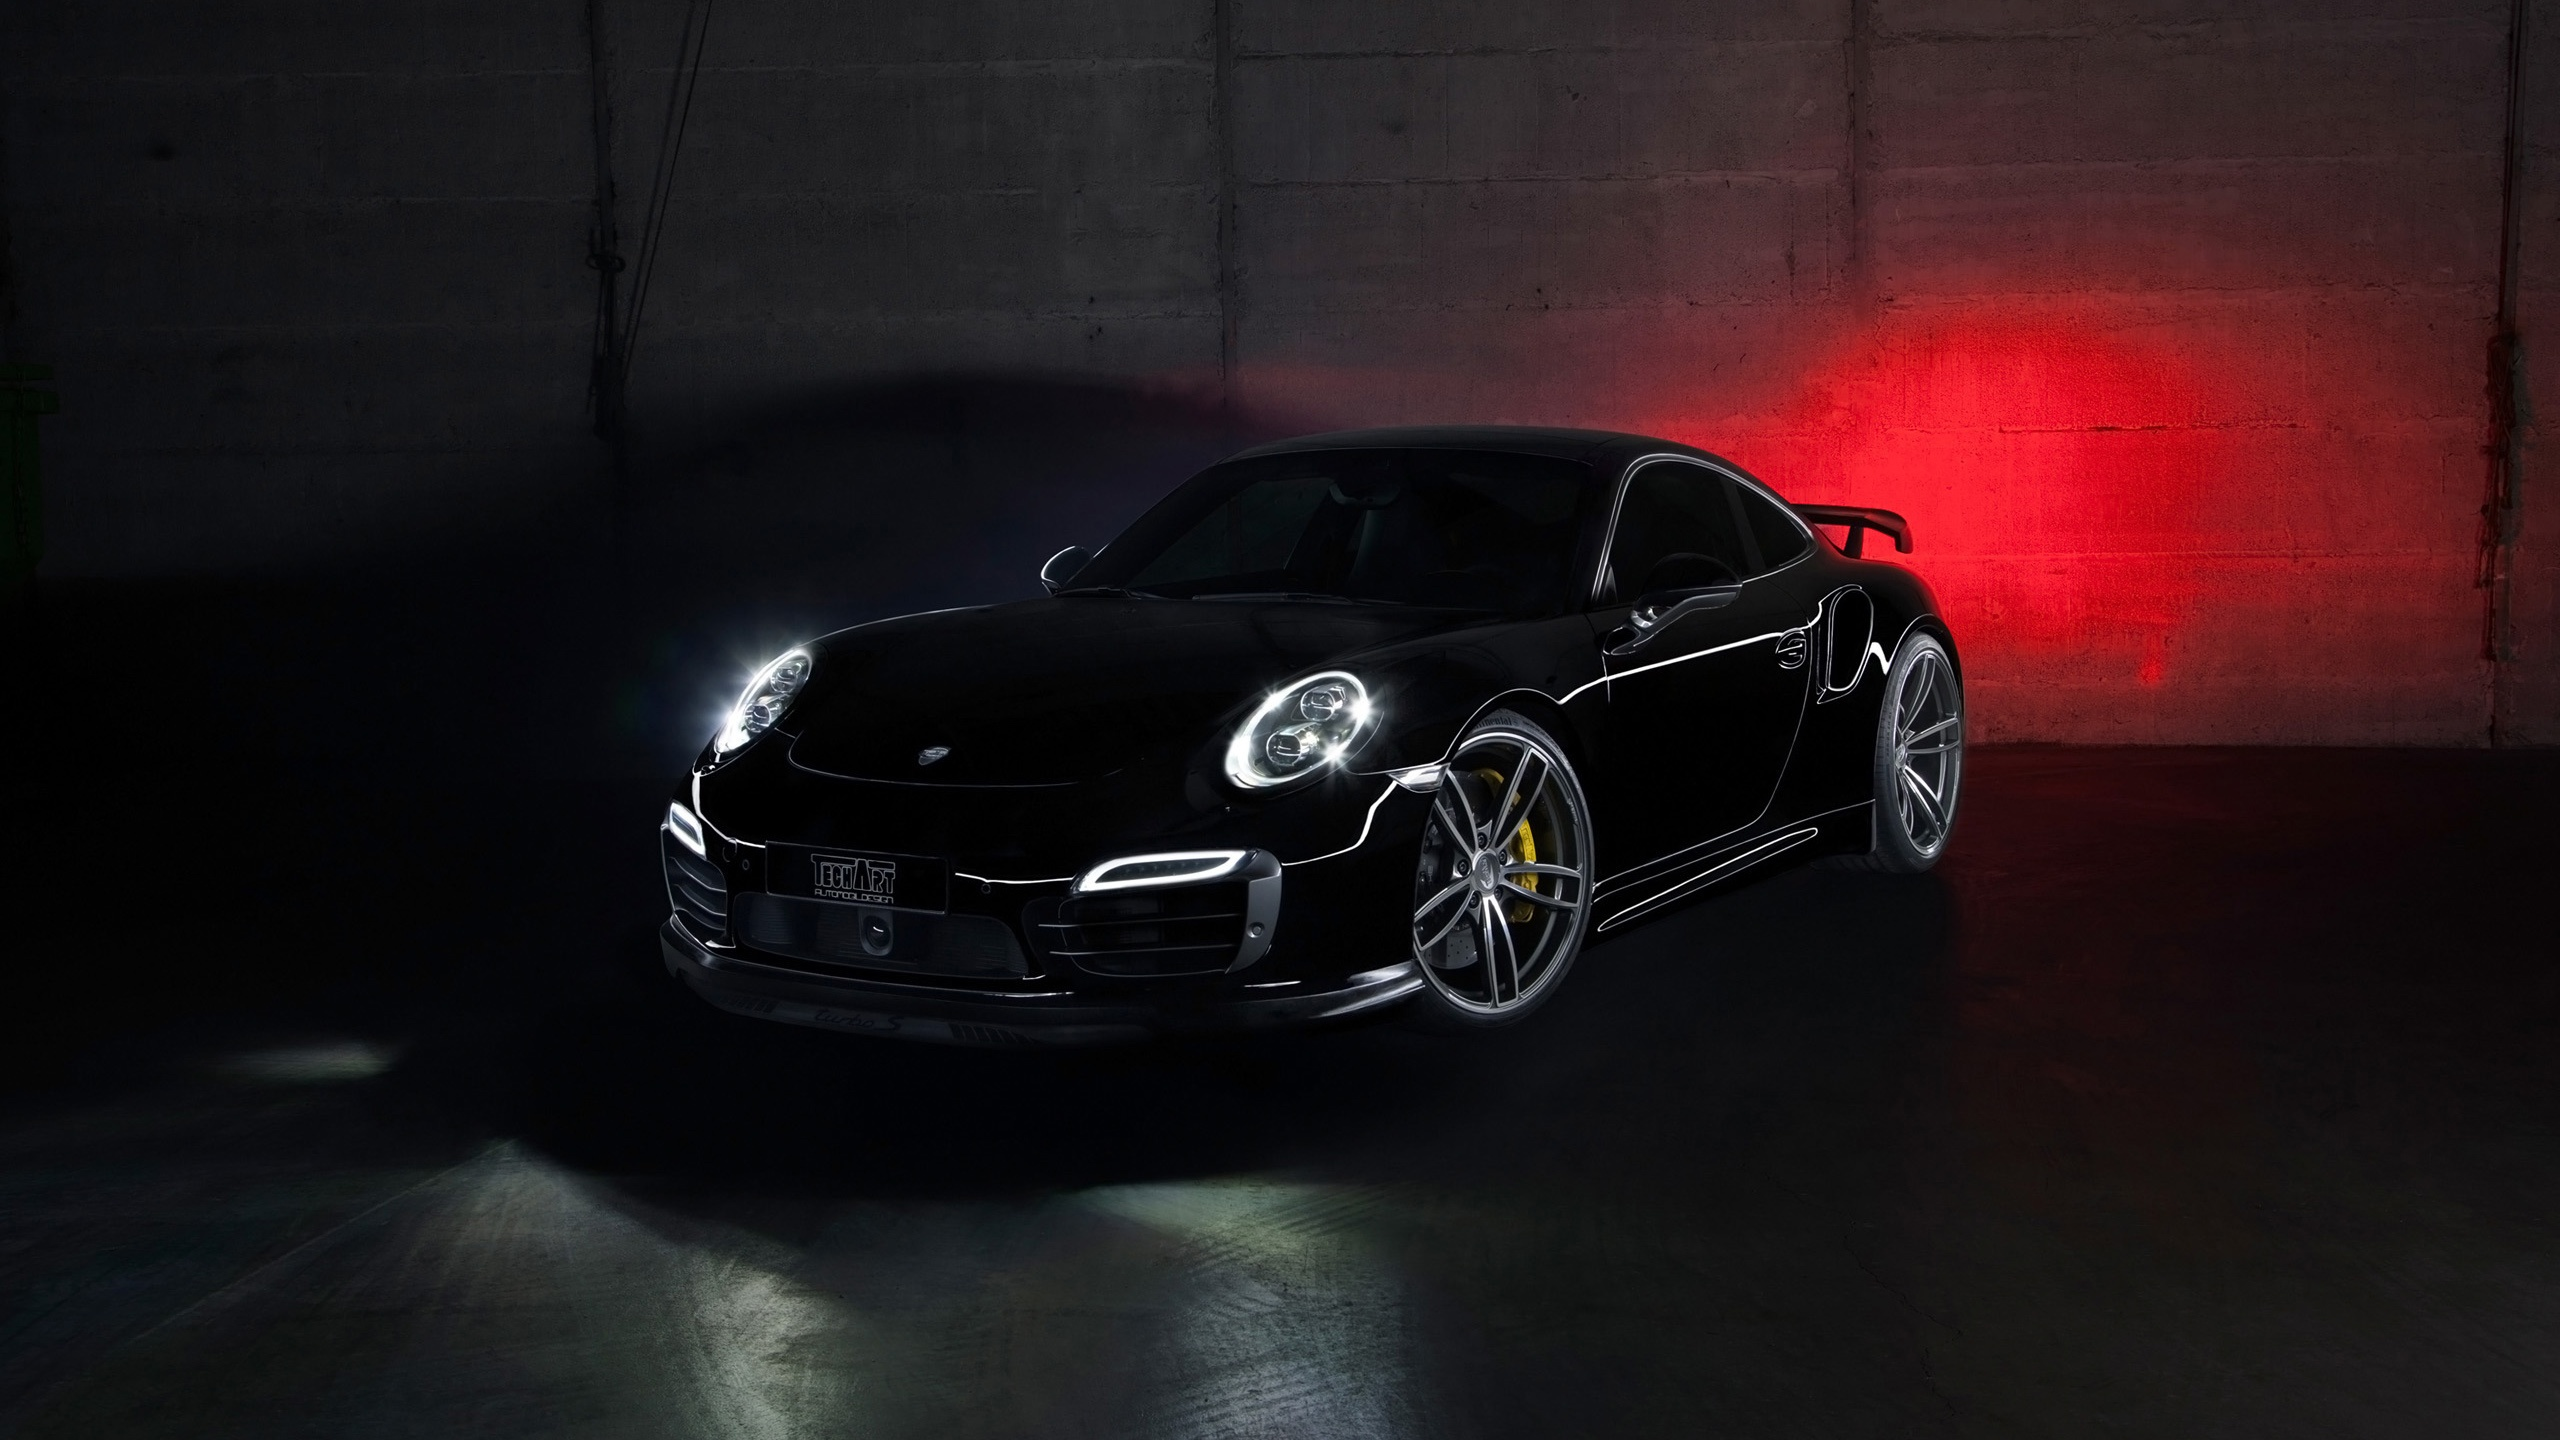 techart_porsche_911_turbo.jpg